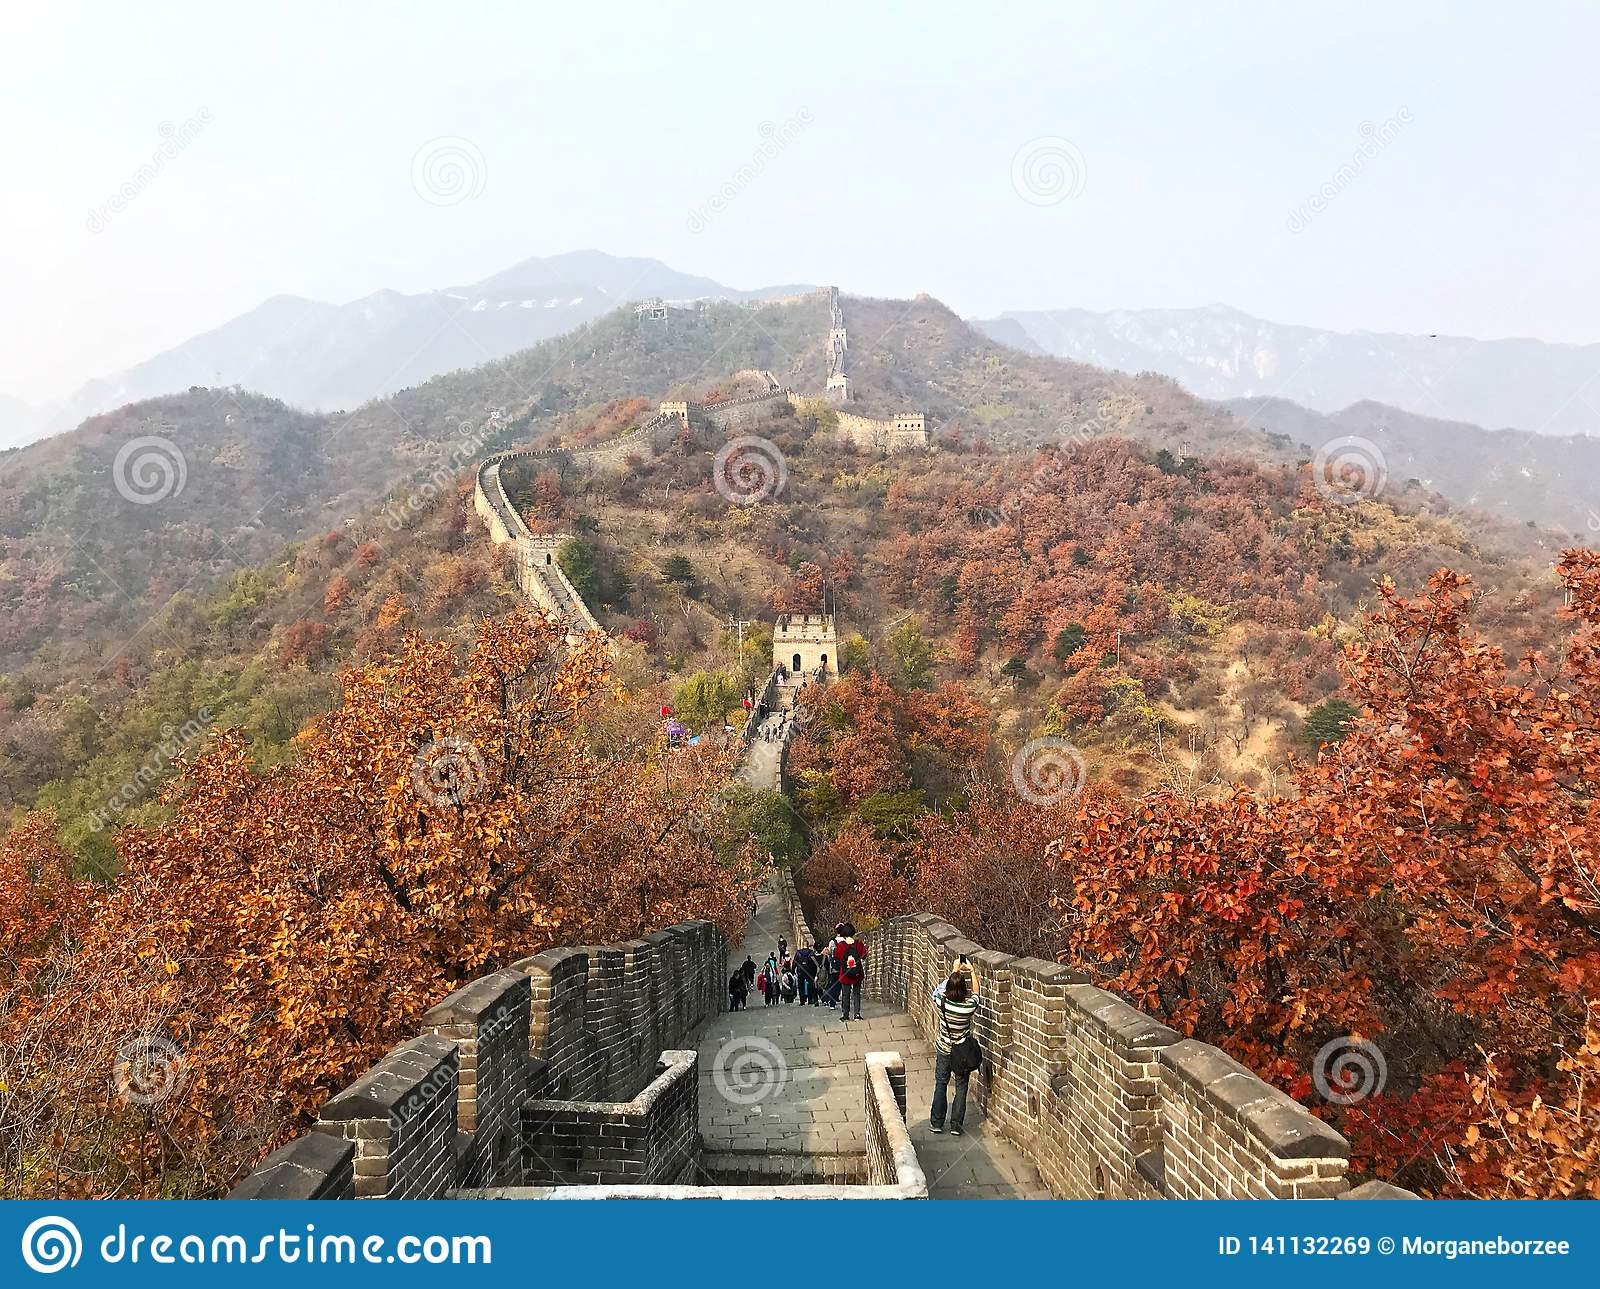 The great wall of China at Mutianyu section of the mountains.